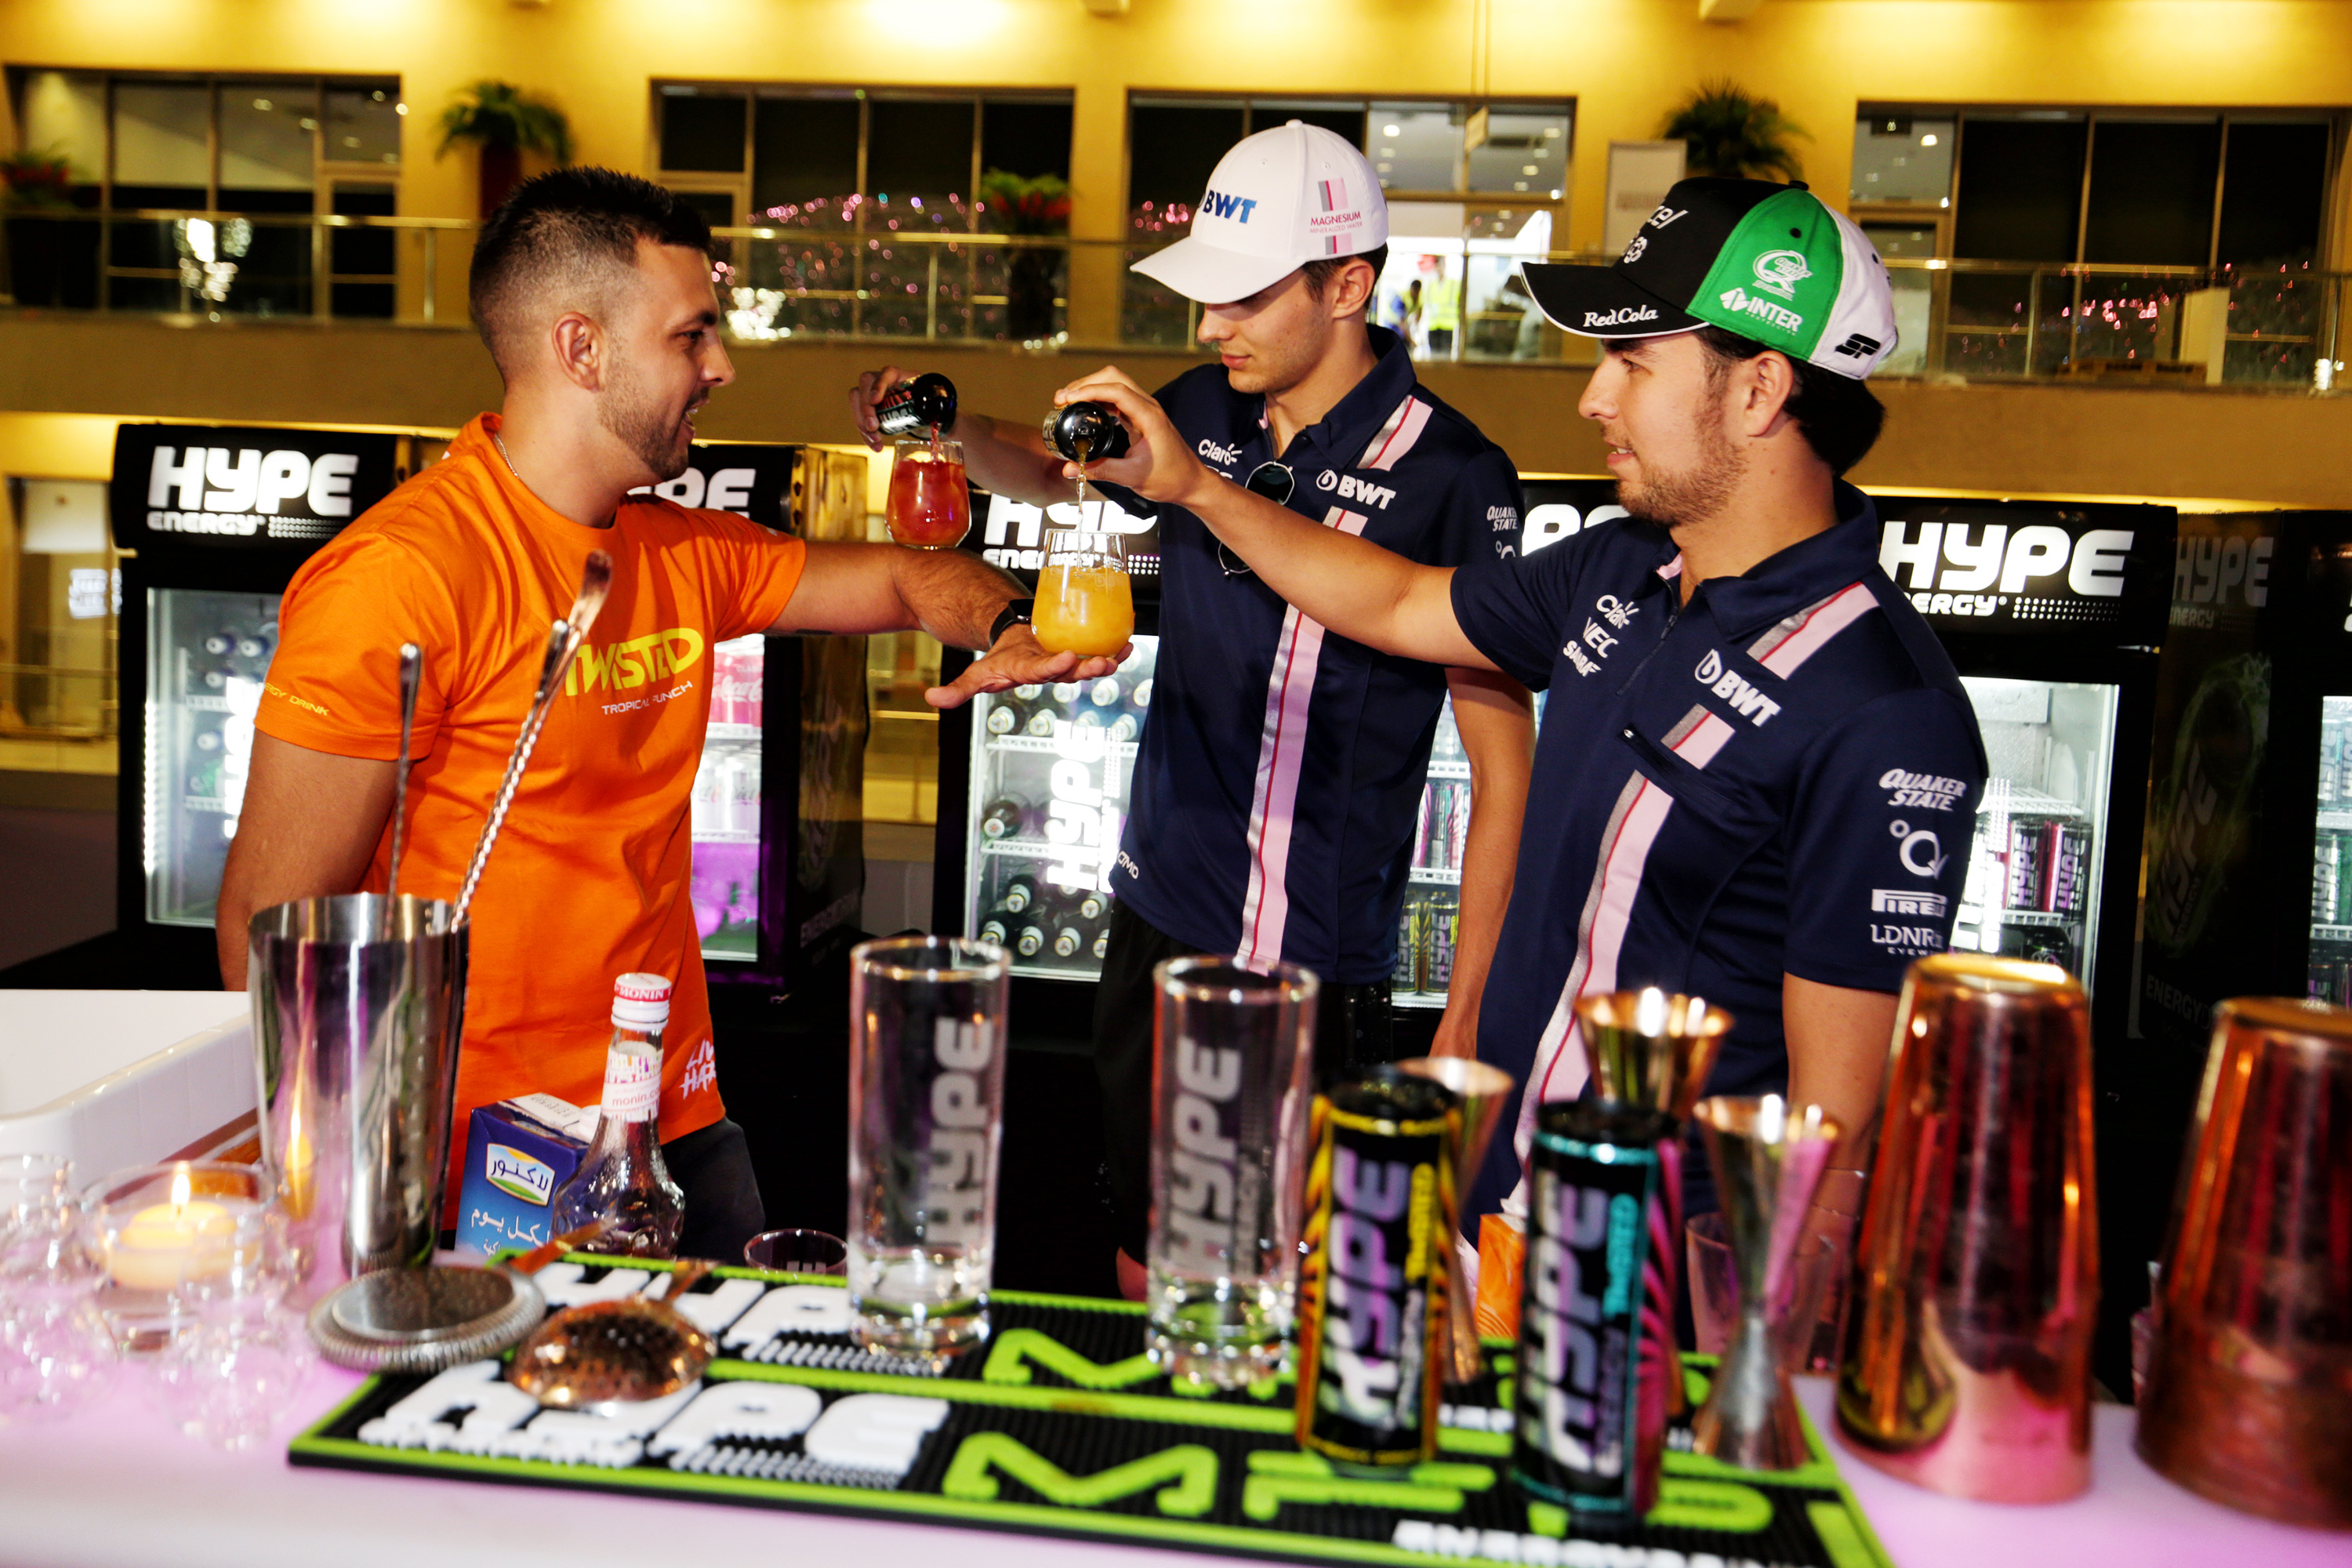 Hype Energy Twisted Launch Sergio Perez Esteban Ocon Cocktails